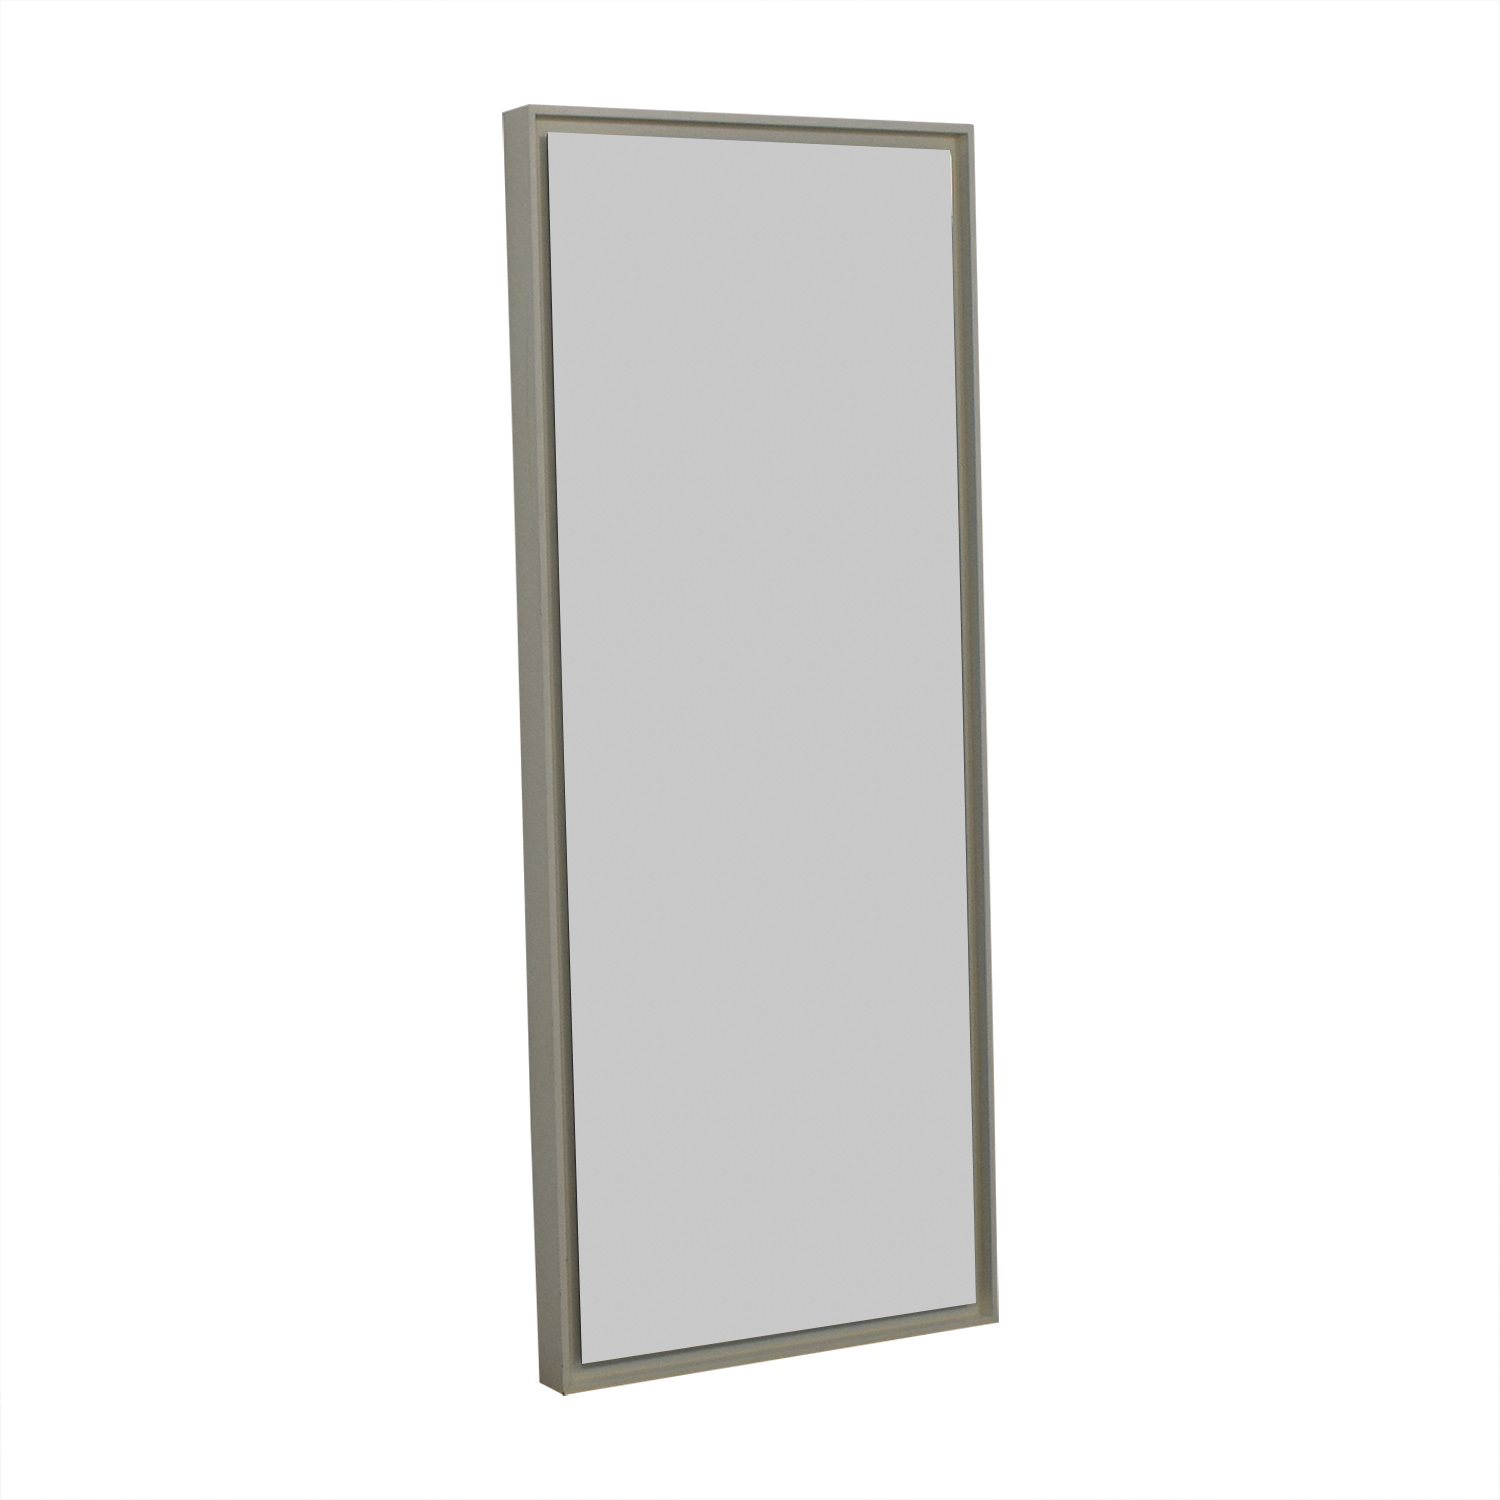 West Elm West Elm White Floating Mirror on sale